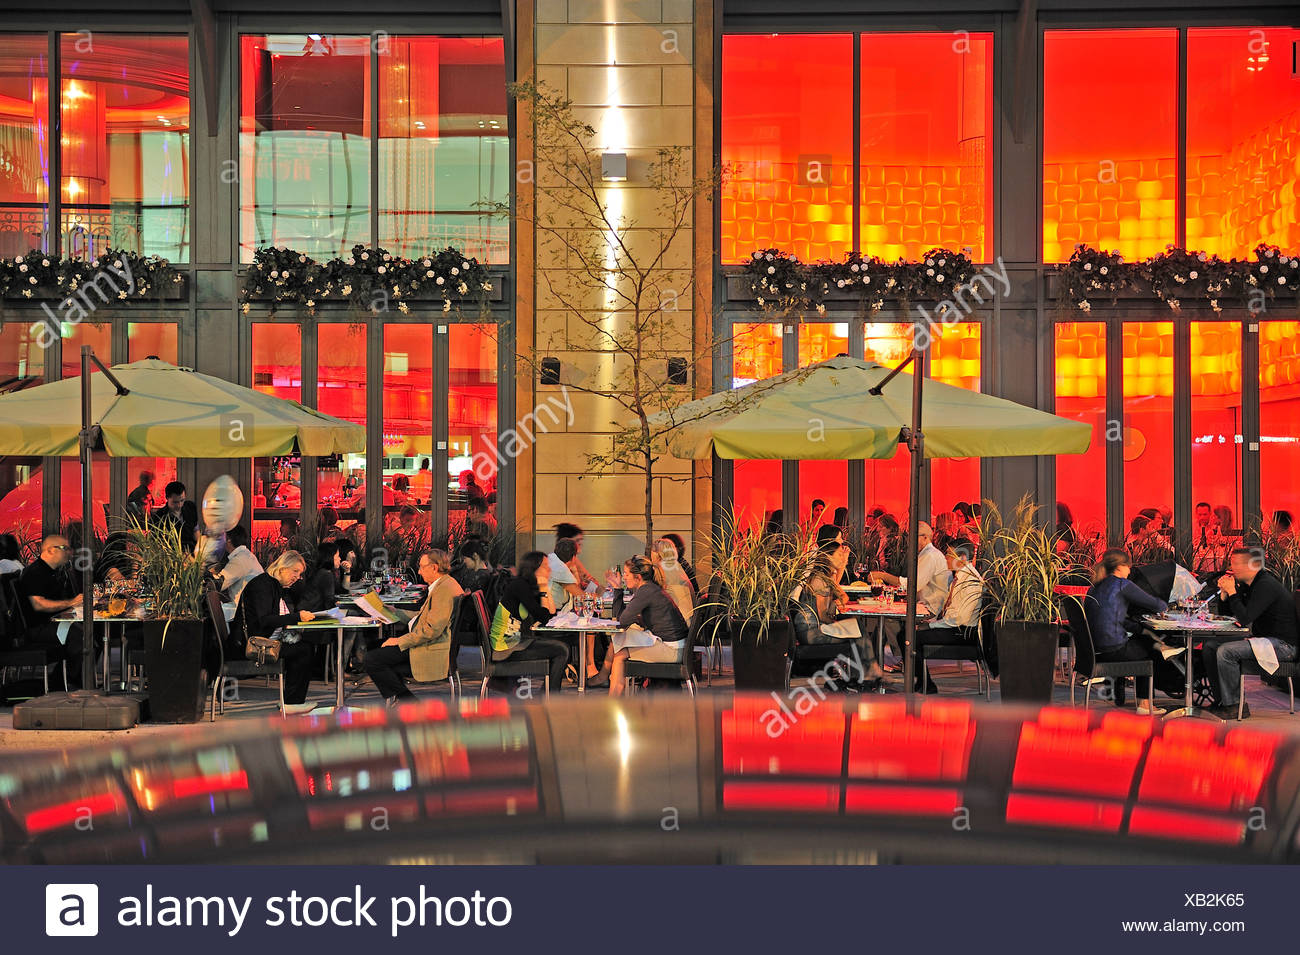 Canada, Montreal, Patio, Quartier de Musee, Quebec, Restaurant, cafe, dine, diners, dining, eating, fancy, outside, red, reflect - Stock Image